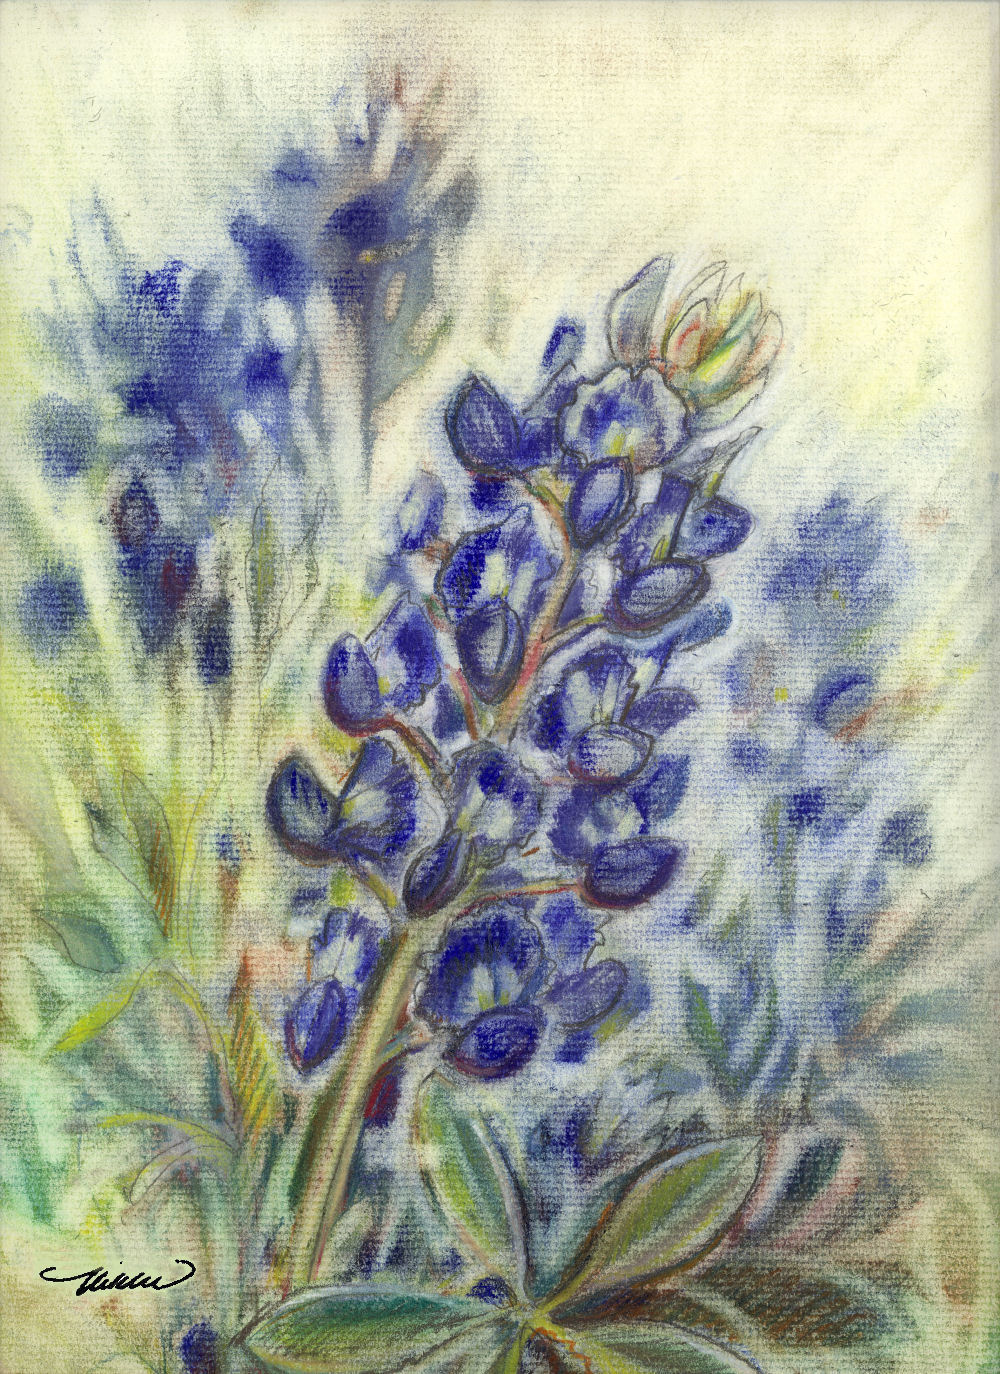 Texas Bluebonnets, 16H x 12W inches Dry Pastels on paper, wood frame with white crackle finish, 26H x 22W inches total